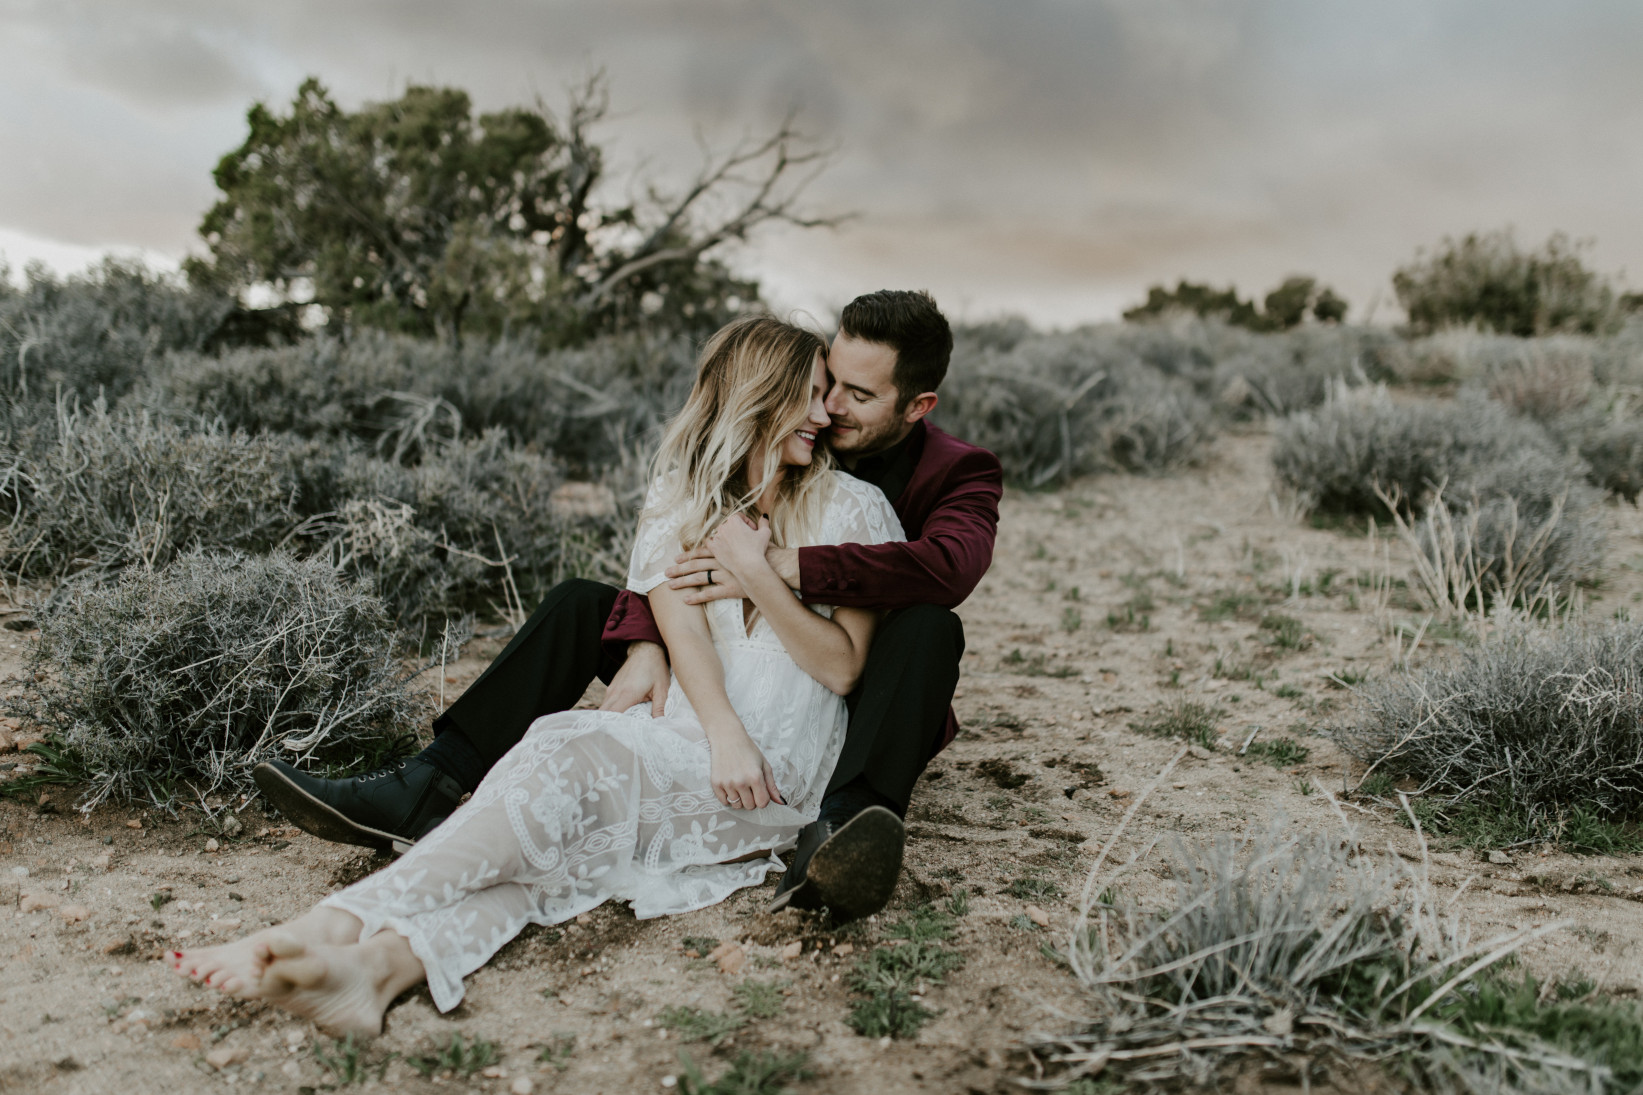 Jeremy and Alyssa sit on the sand at Joshua Tree National Park, CA Elopement wedding photography at Joshua Tree National Park by Sienna Plus Josh.